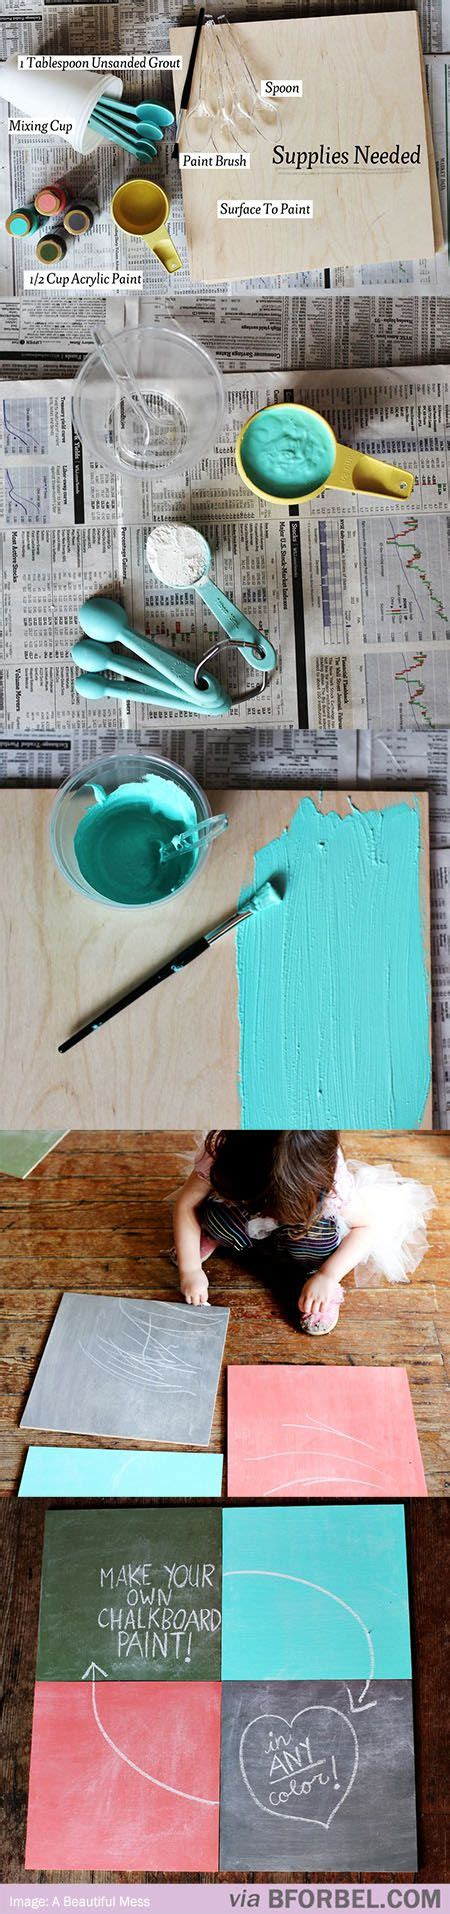 diy chalk paint troubleshooting make chalkboard paint chalkboard paint and chalkboards on